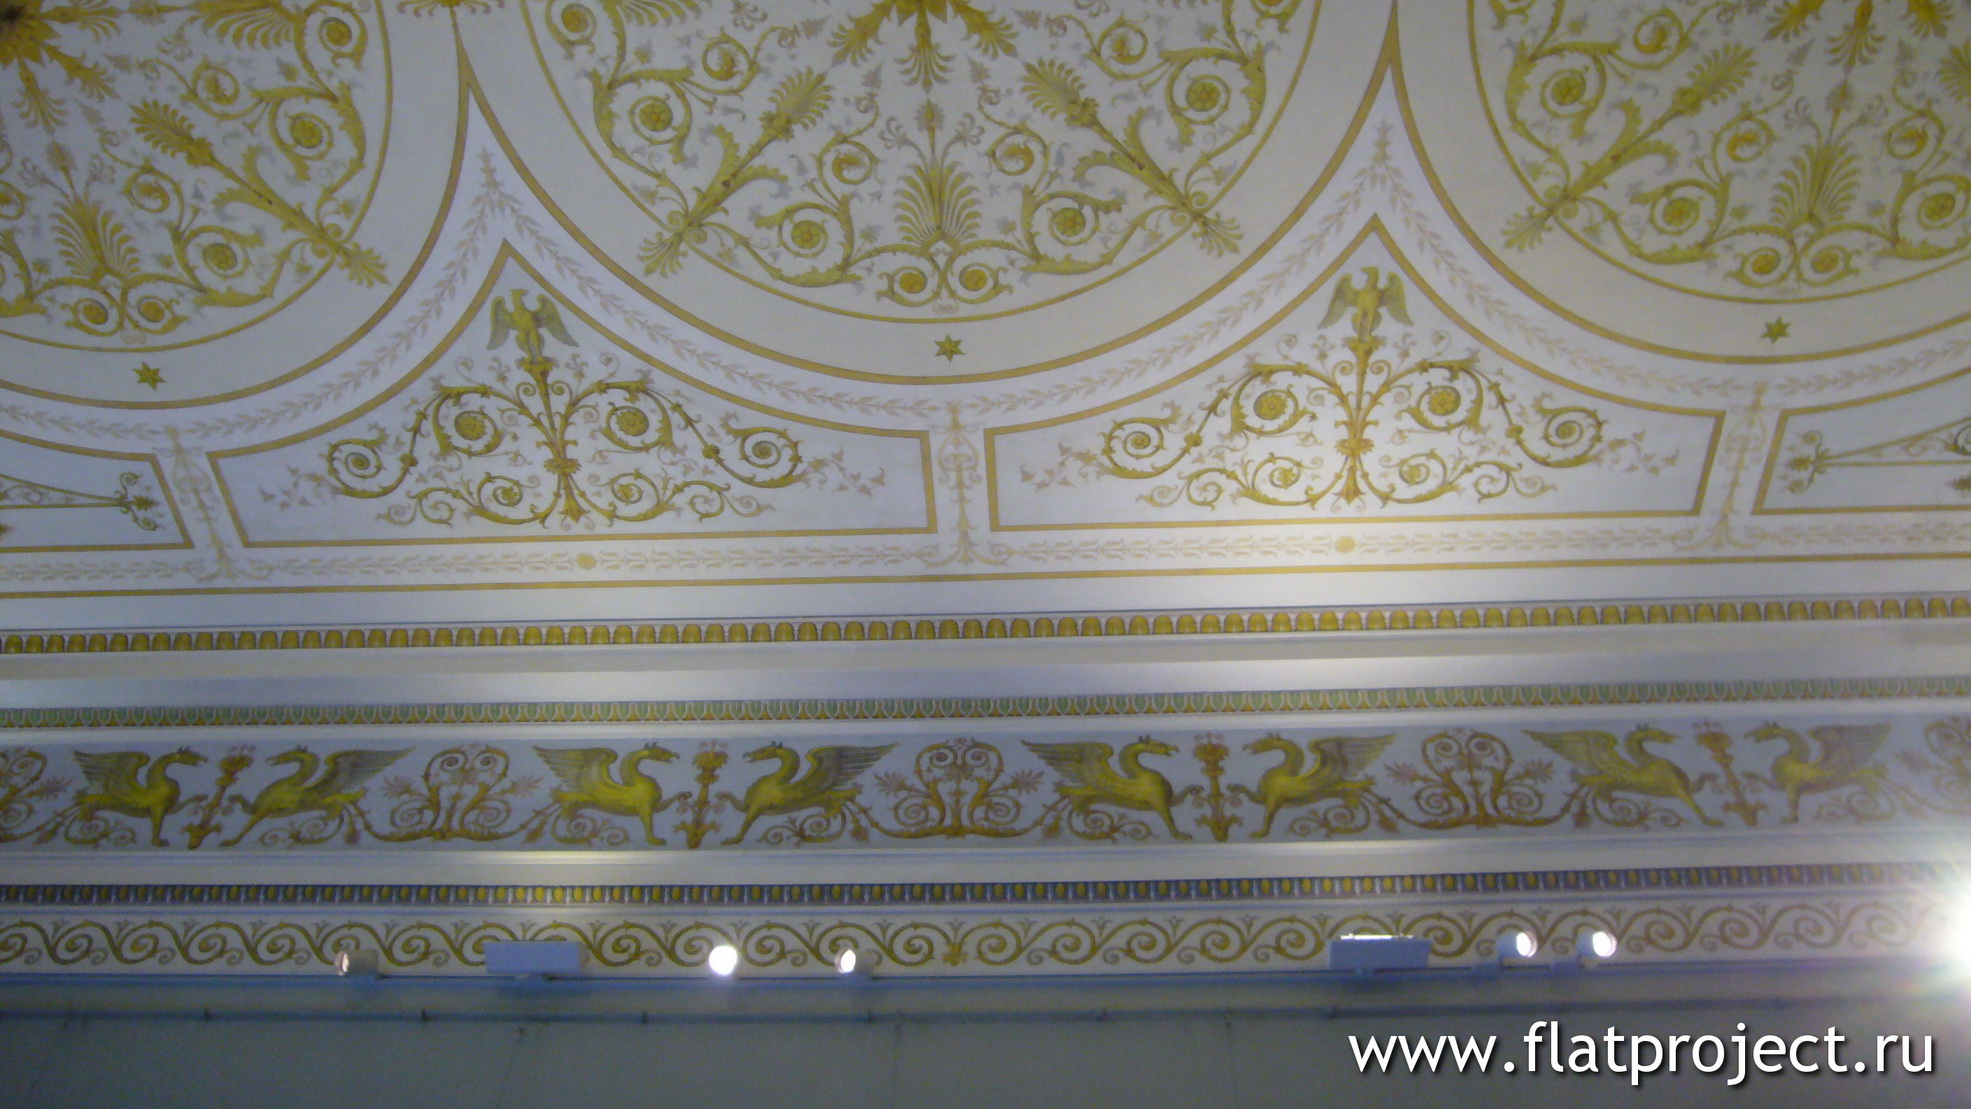 The State Hermitage museum interiors – photo 111